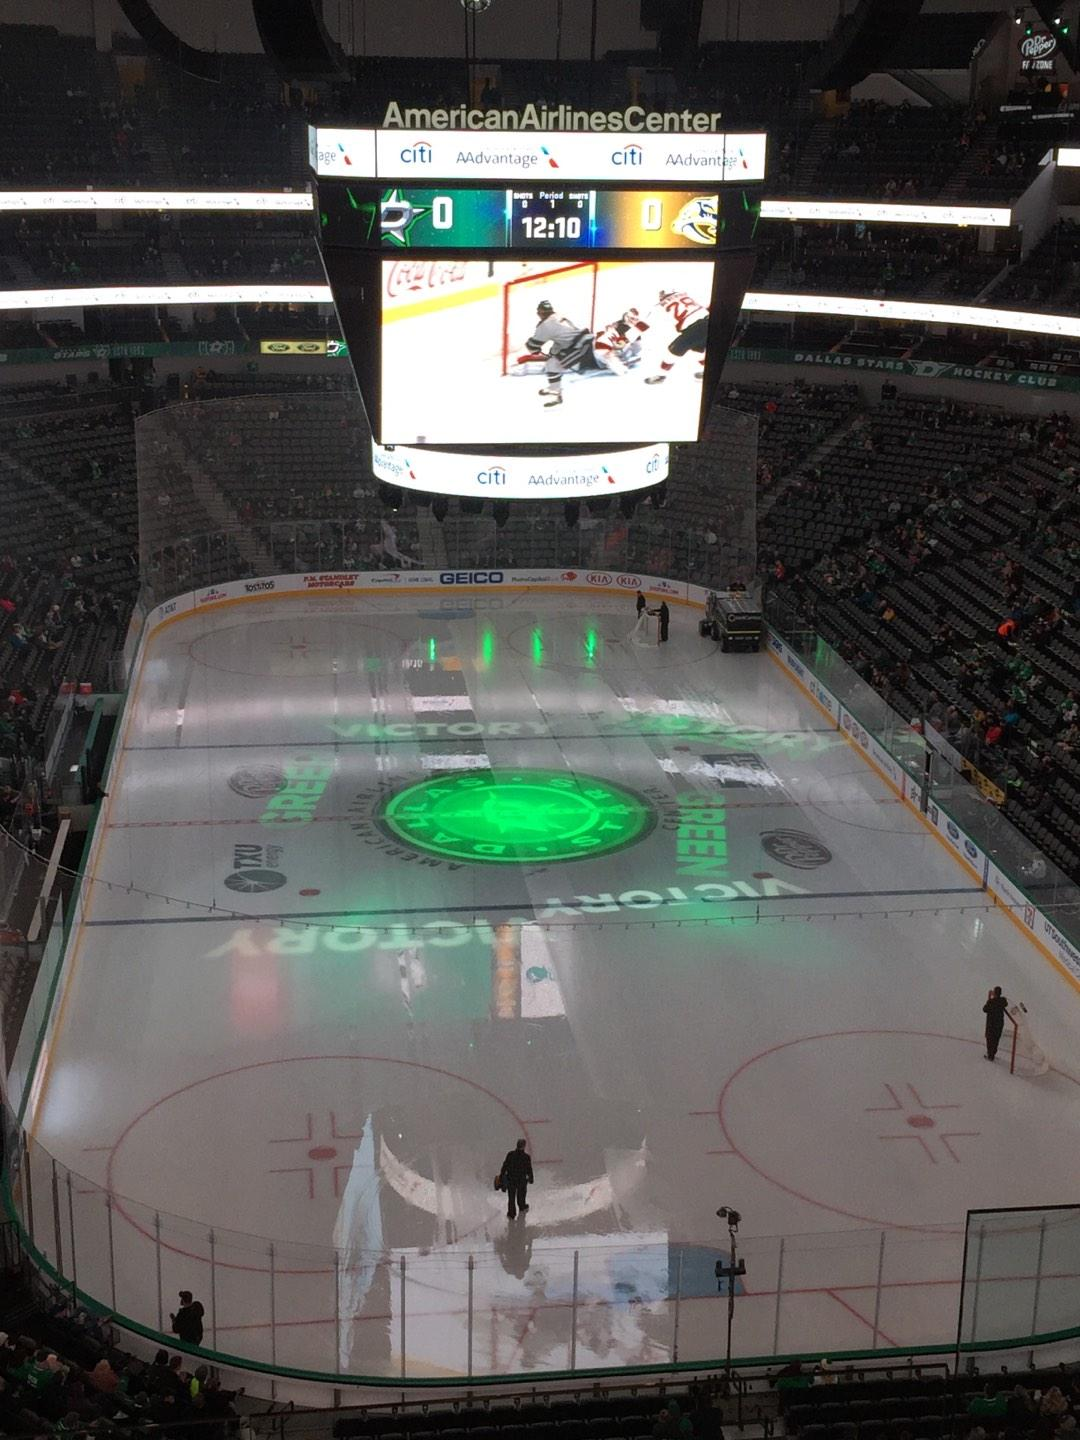 American Airlines Center Section 319 Row D Seat 3